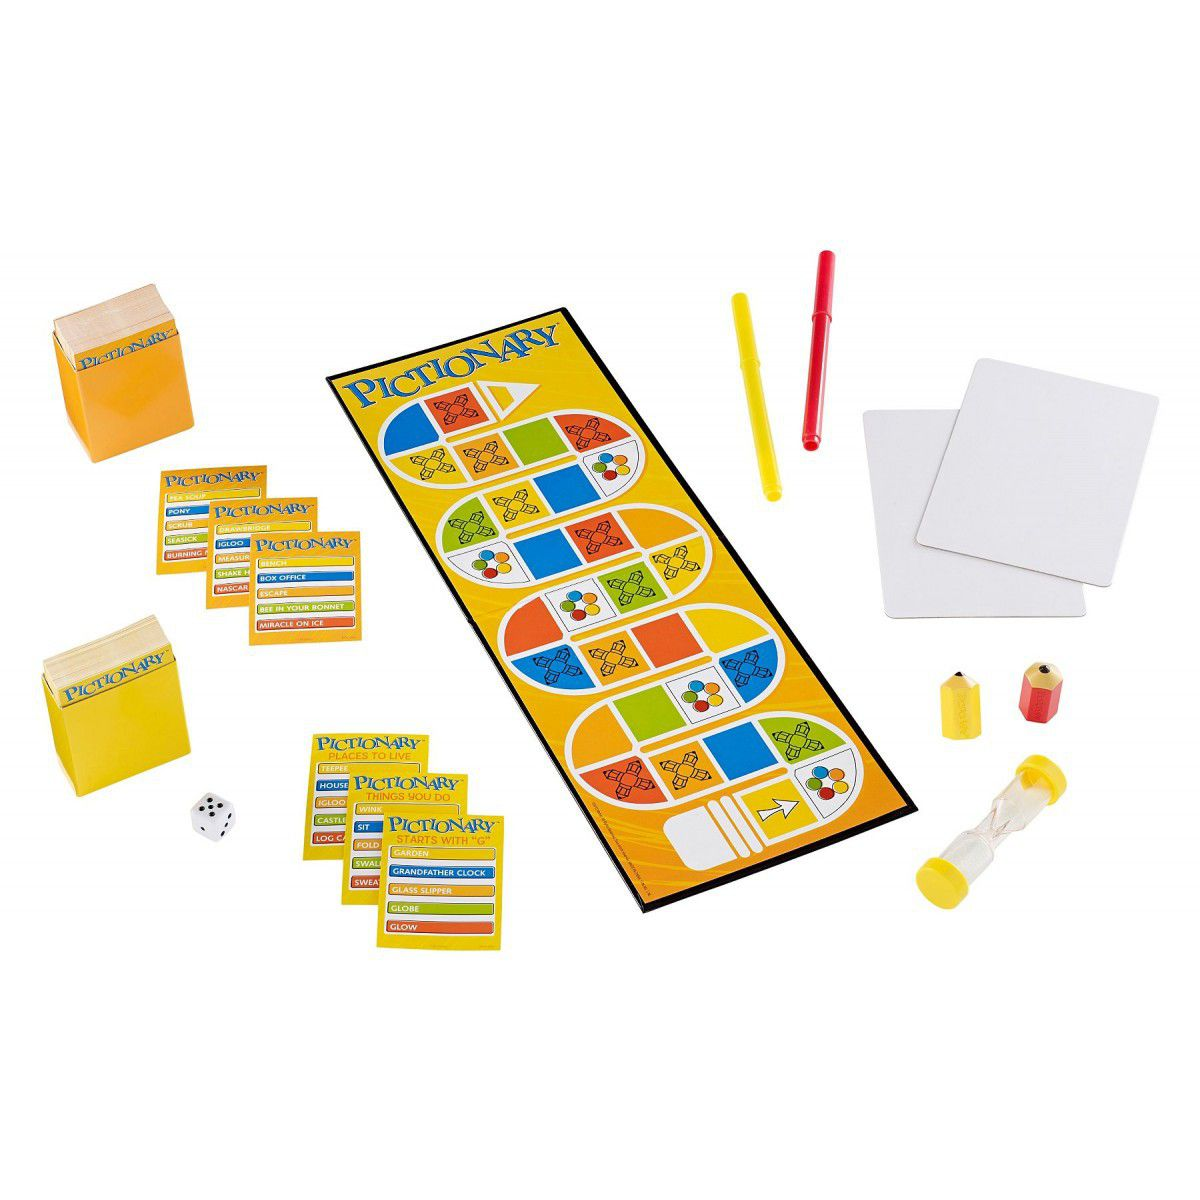 Mattel pictionary board game buy online in south africa takealot pictionary board game pictionary board game solutioingenieria Image collections